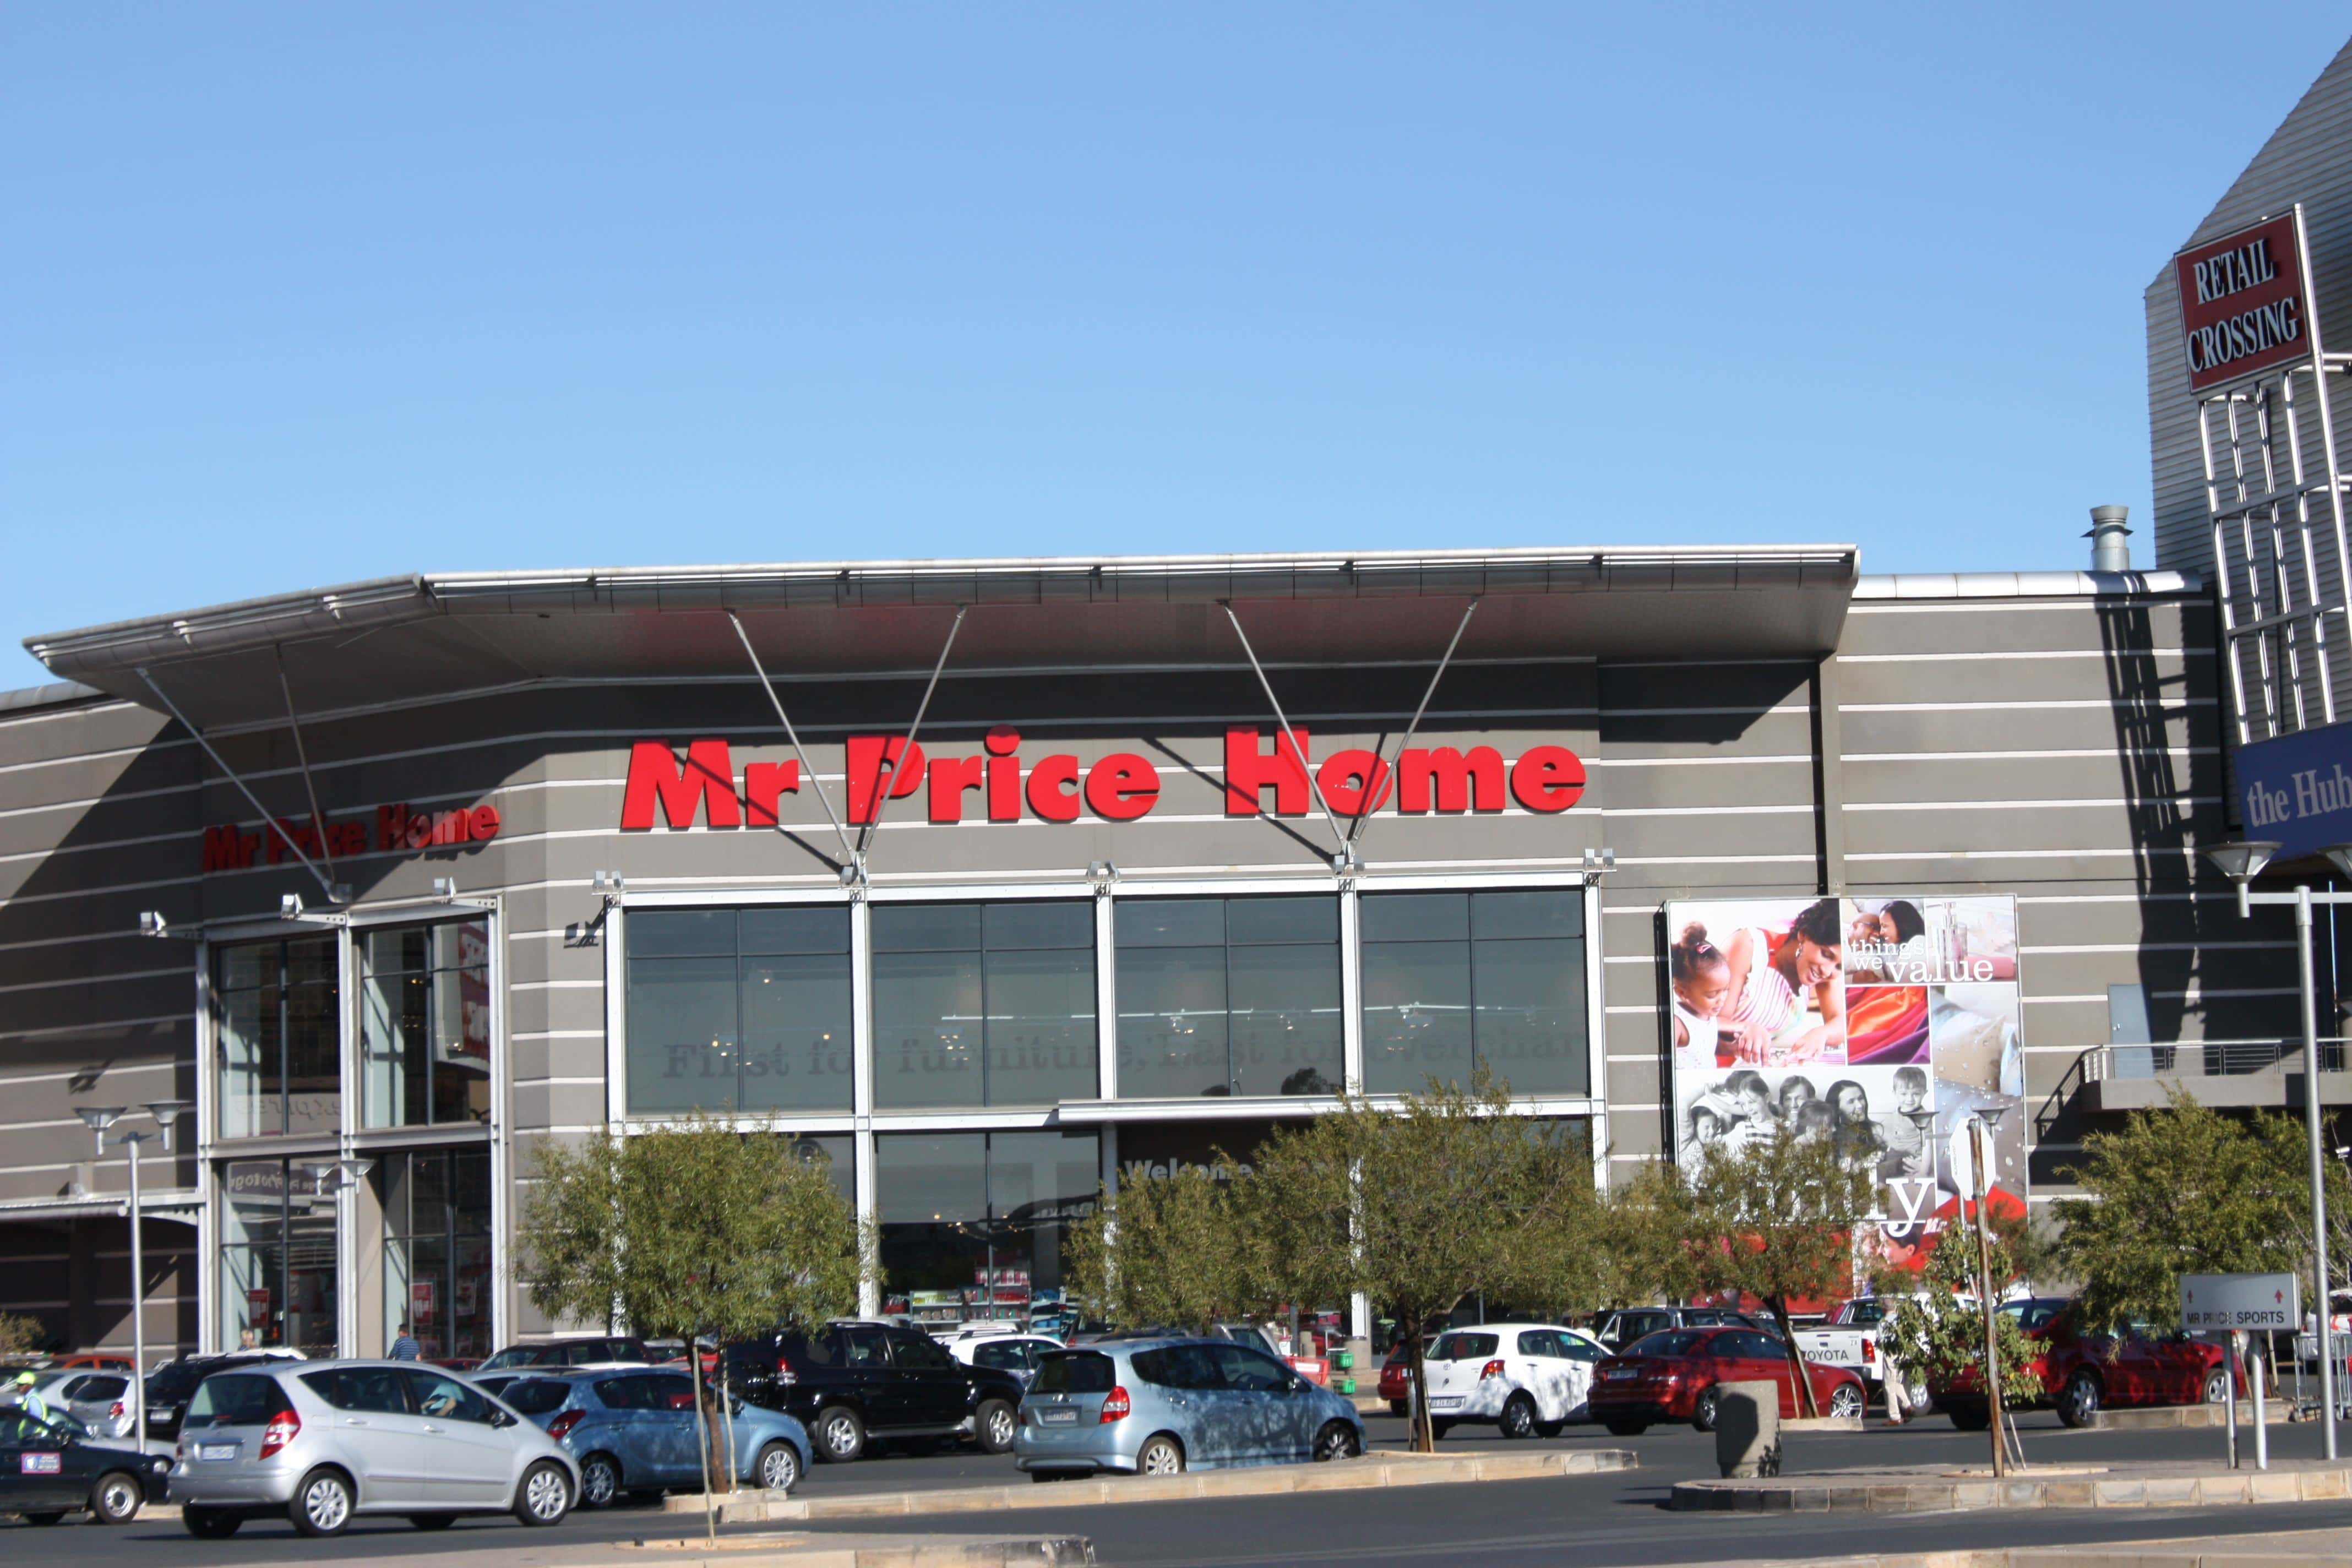 Mr price launches paint department diy trade news - Home decorators store locations property ...